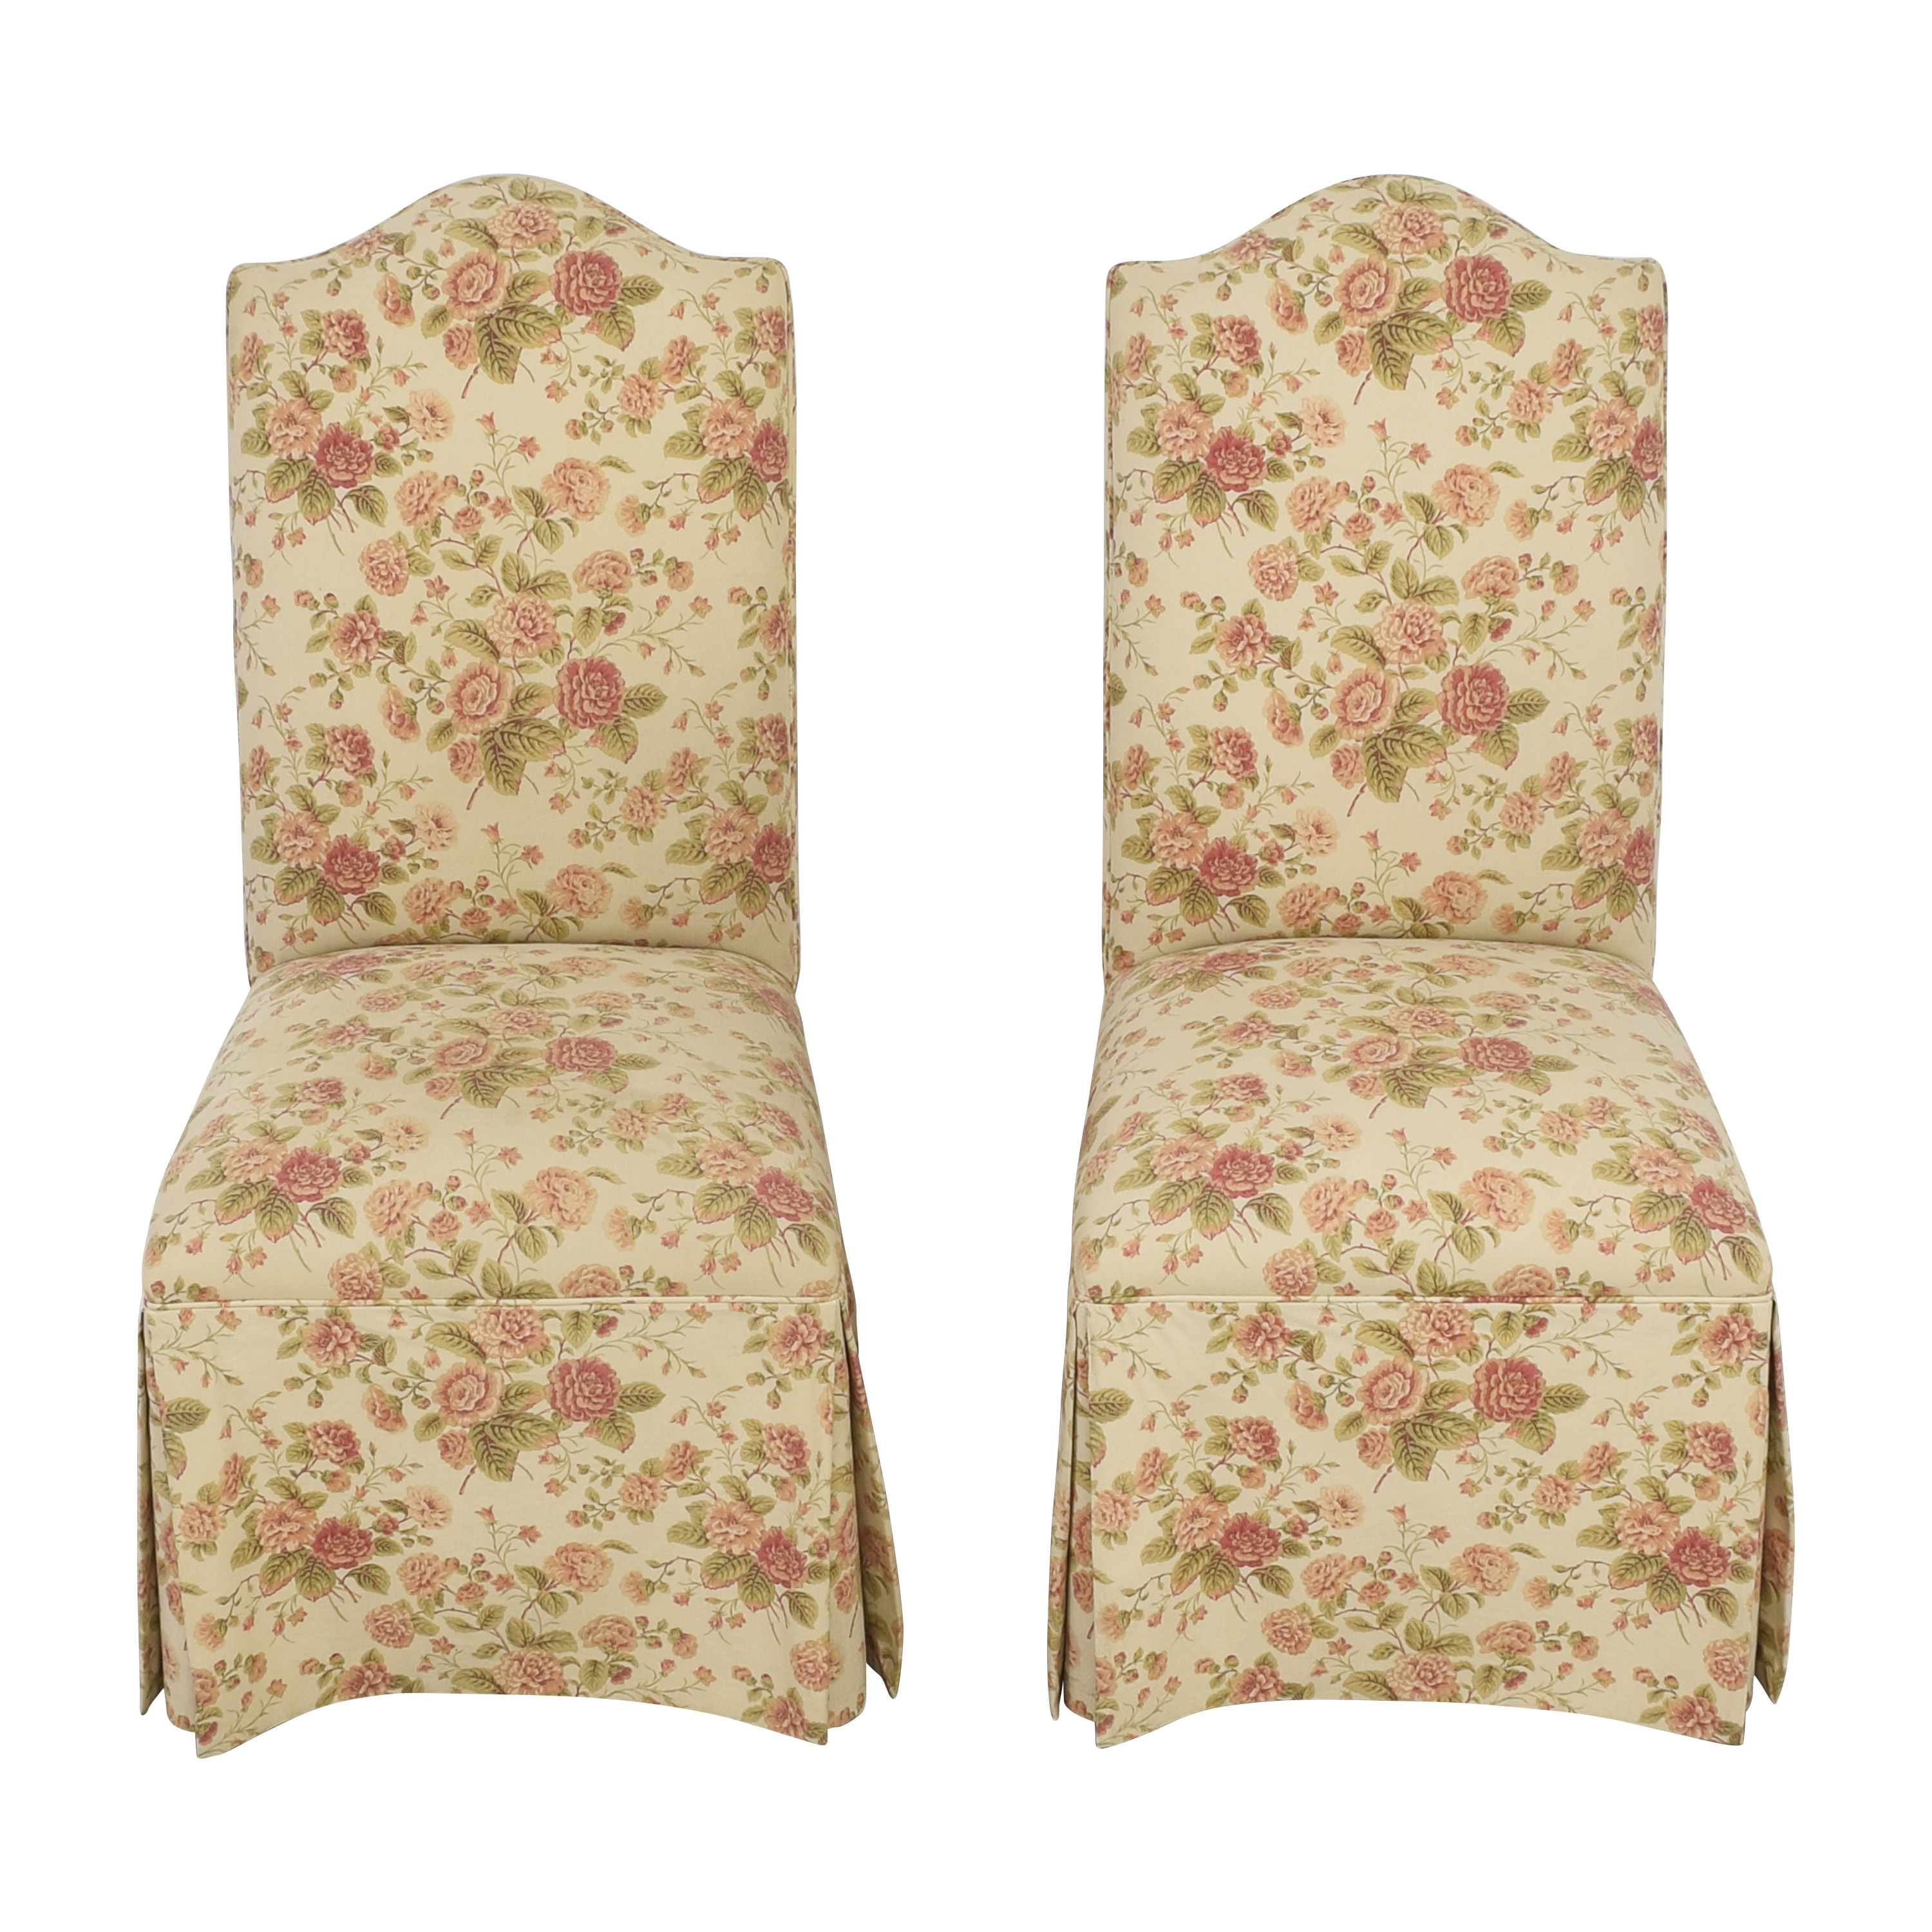 Ethan Allen Ethan Allen Olivia Dining Chairs on sale